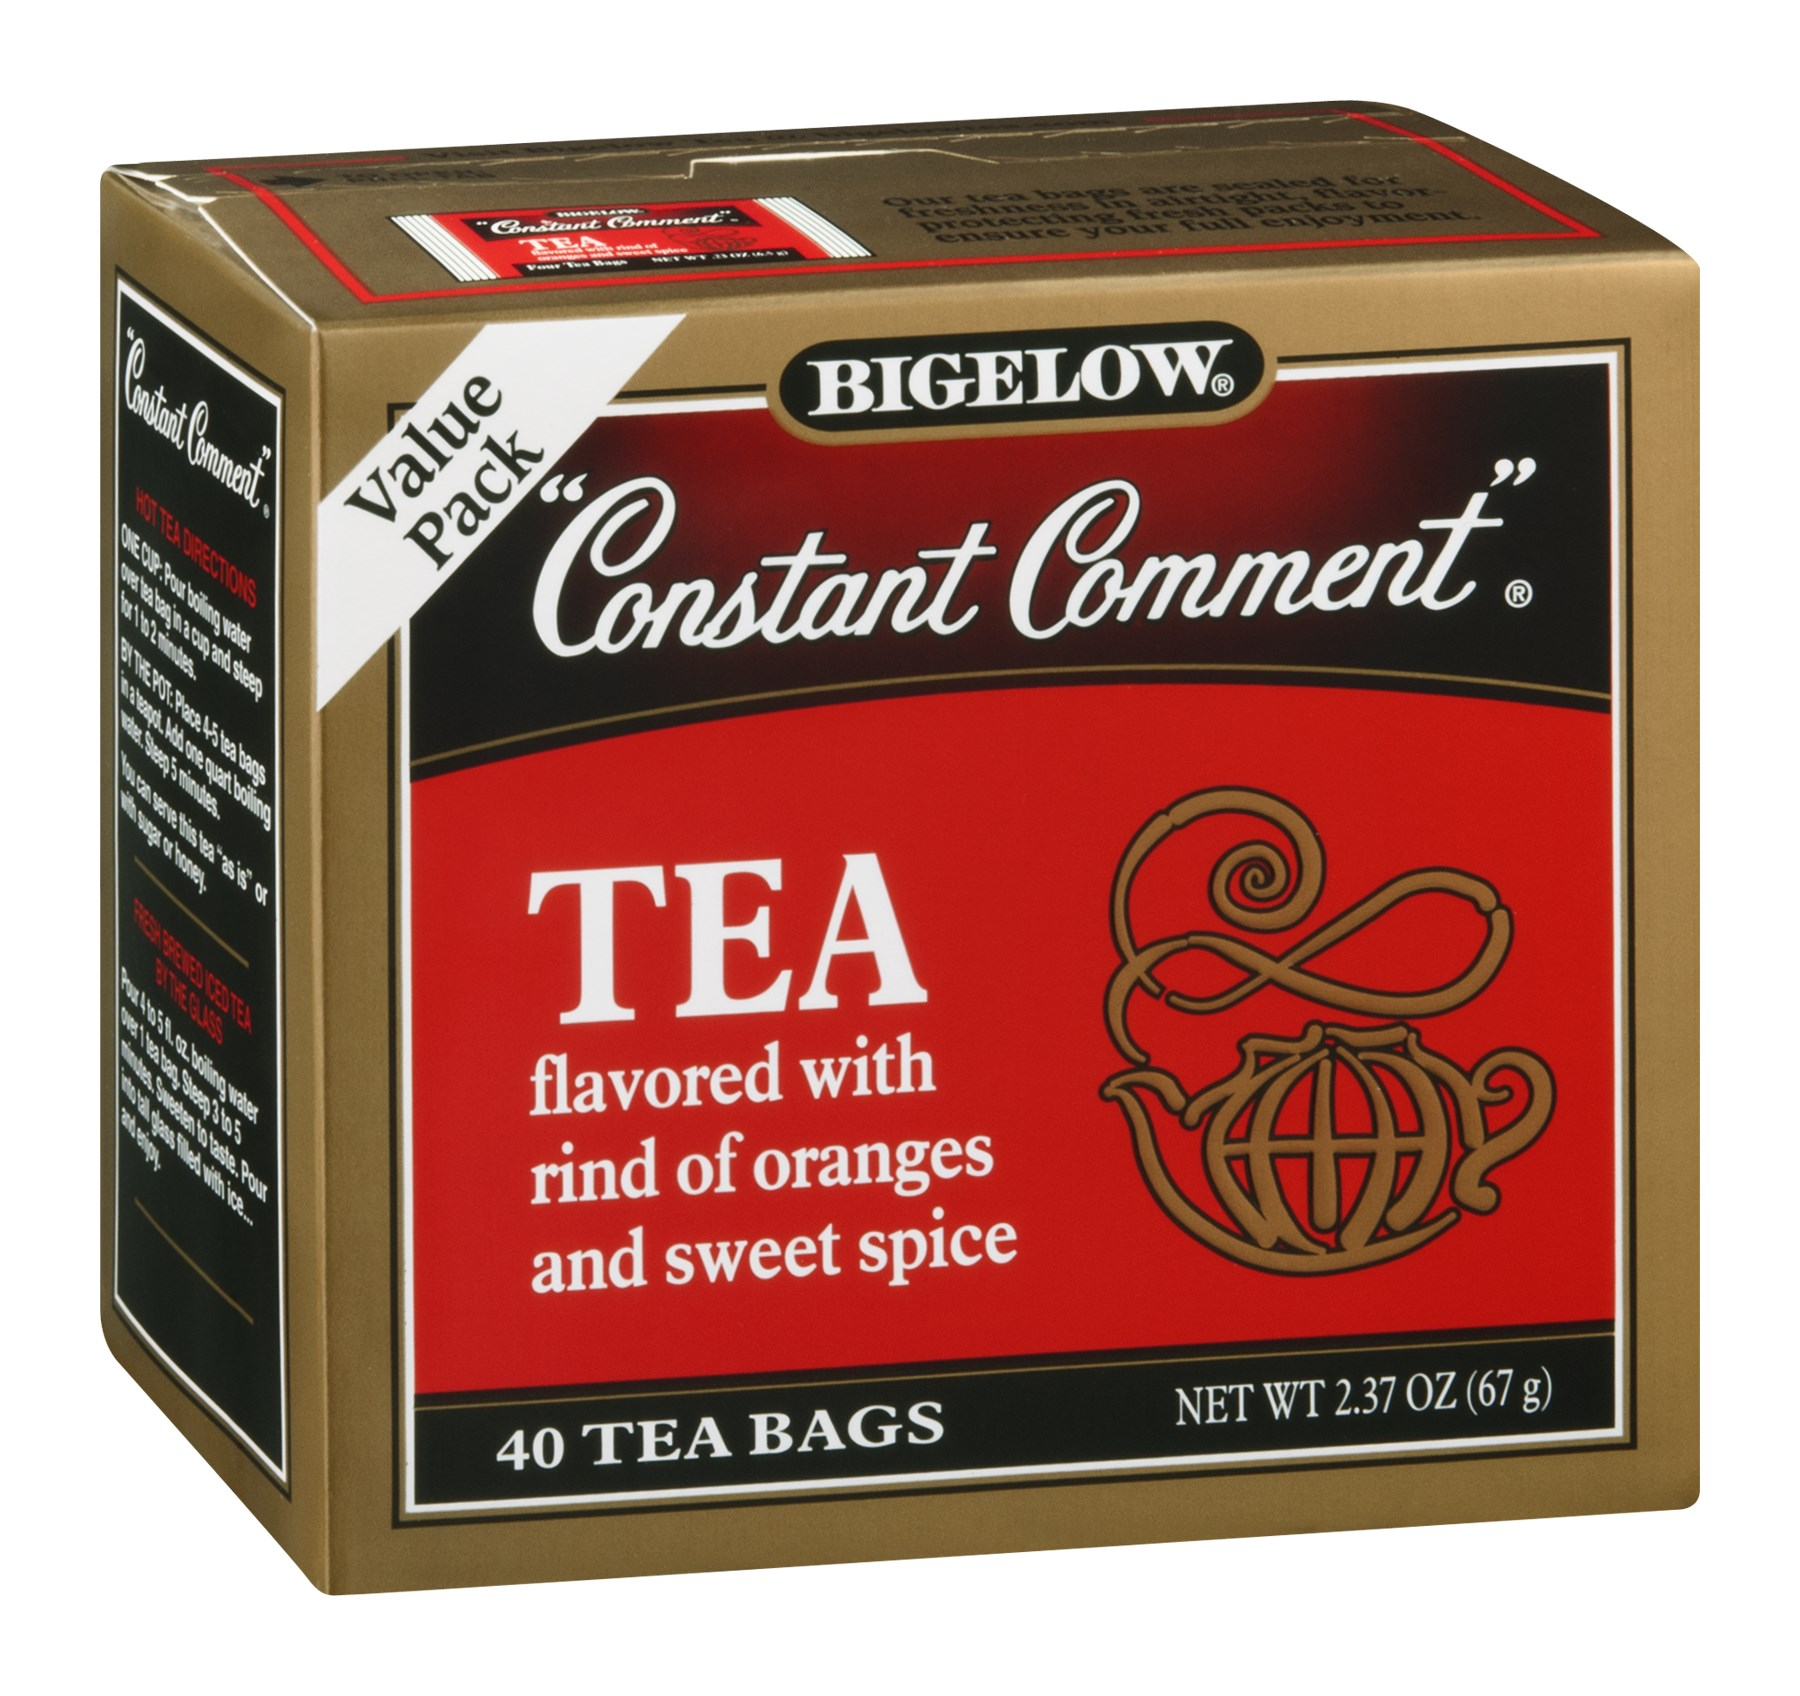 Bigelow Constant Comment Tea, 40 CT (Pack of 6)